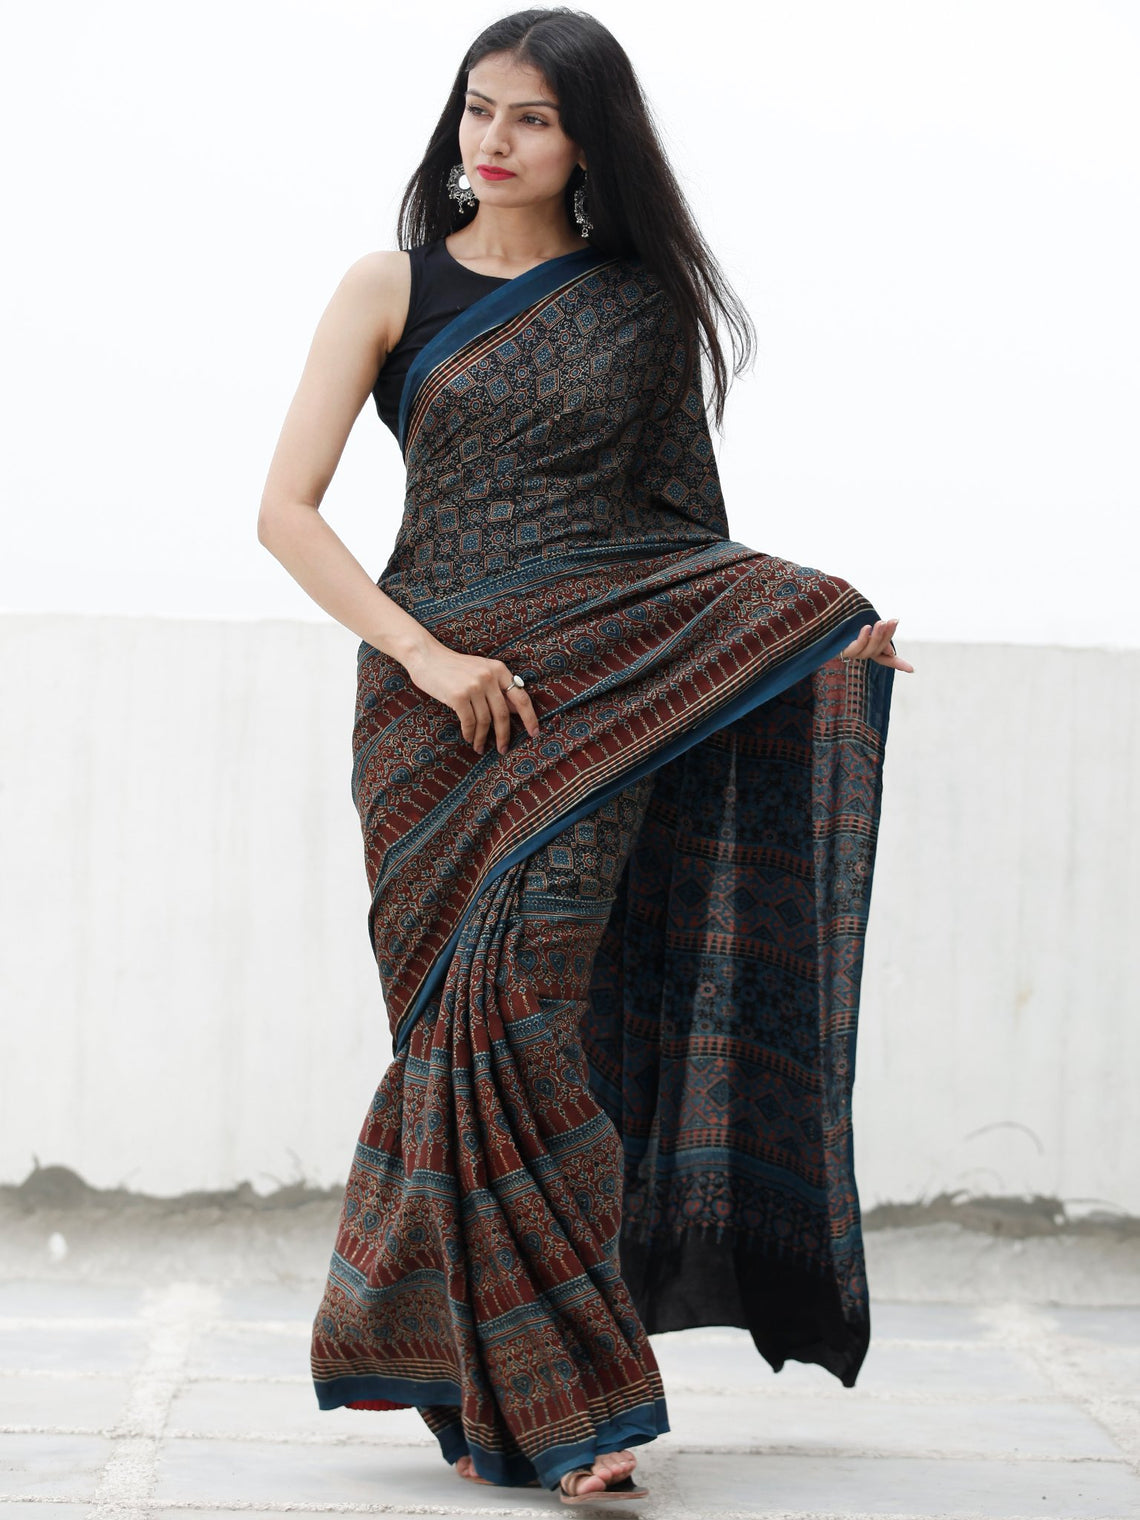 780b6c254d85c Indigo Black Rust Beige Ajrakh Hand Block Printed Modal Silk Saree in Natural  Colors - S031703710 ...